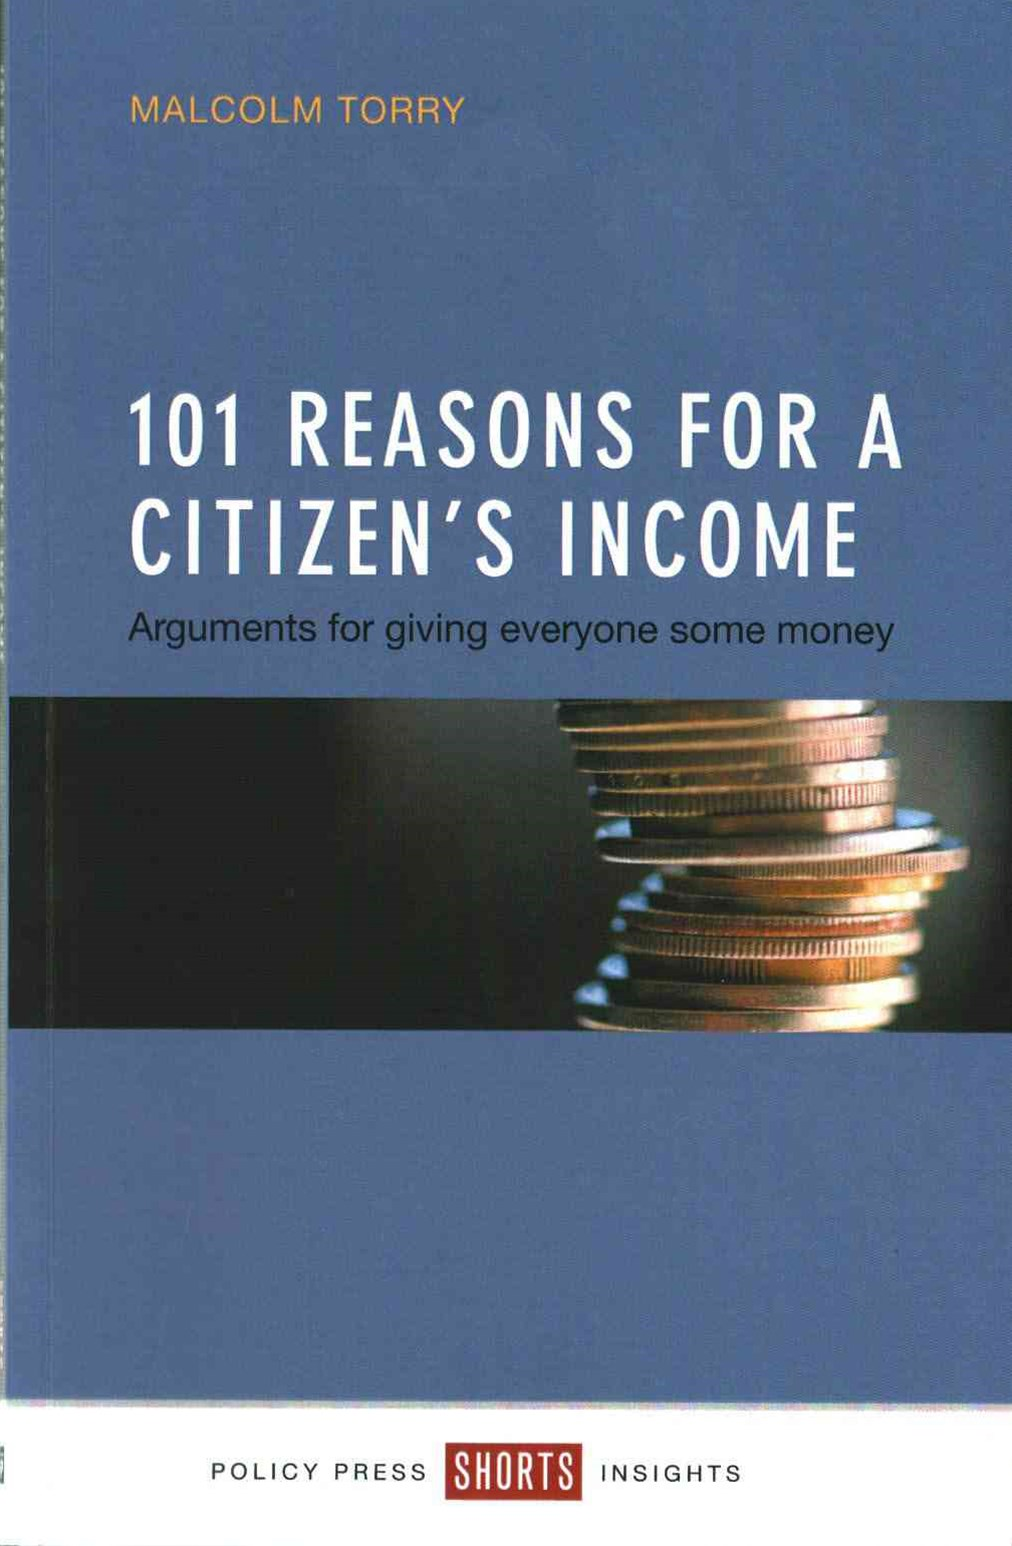 101 reasons for a Citizen's Income